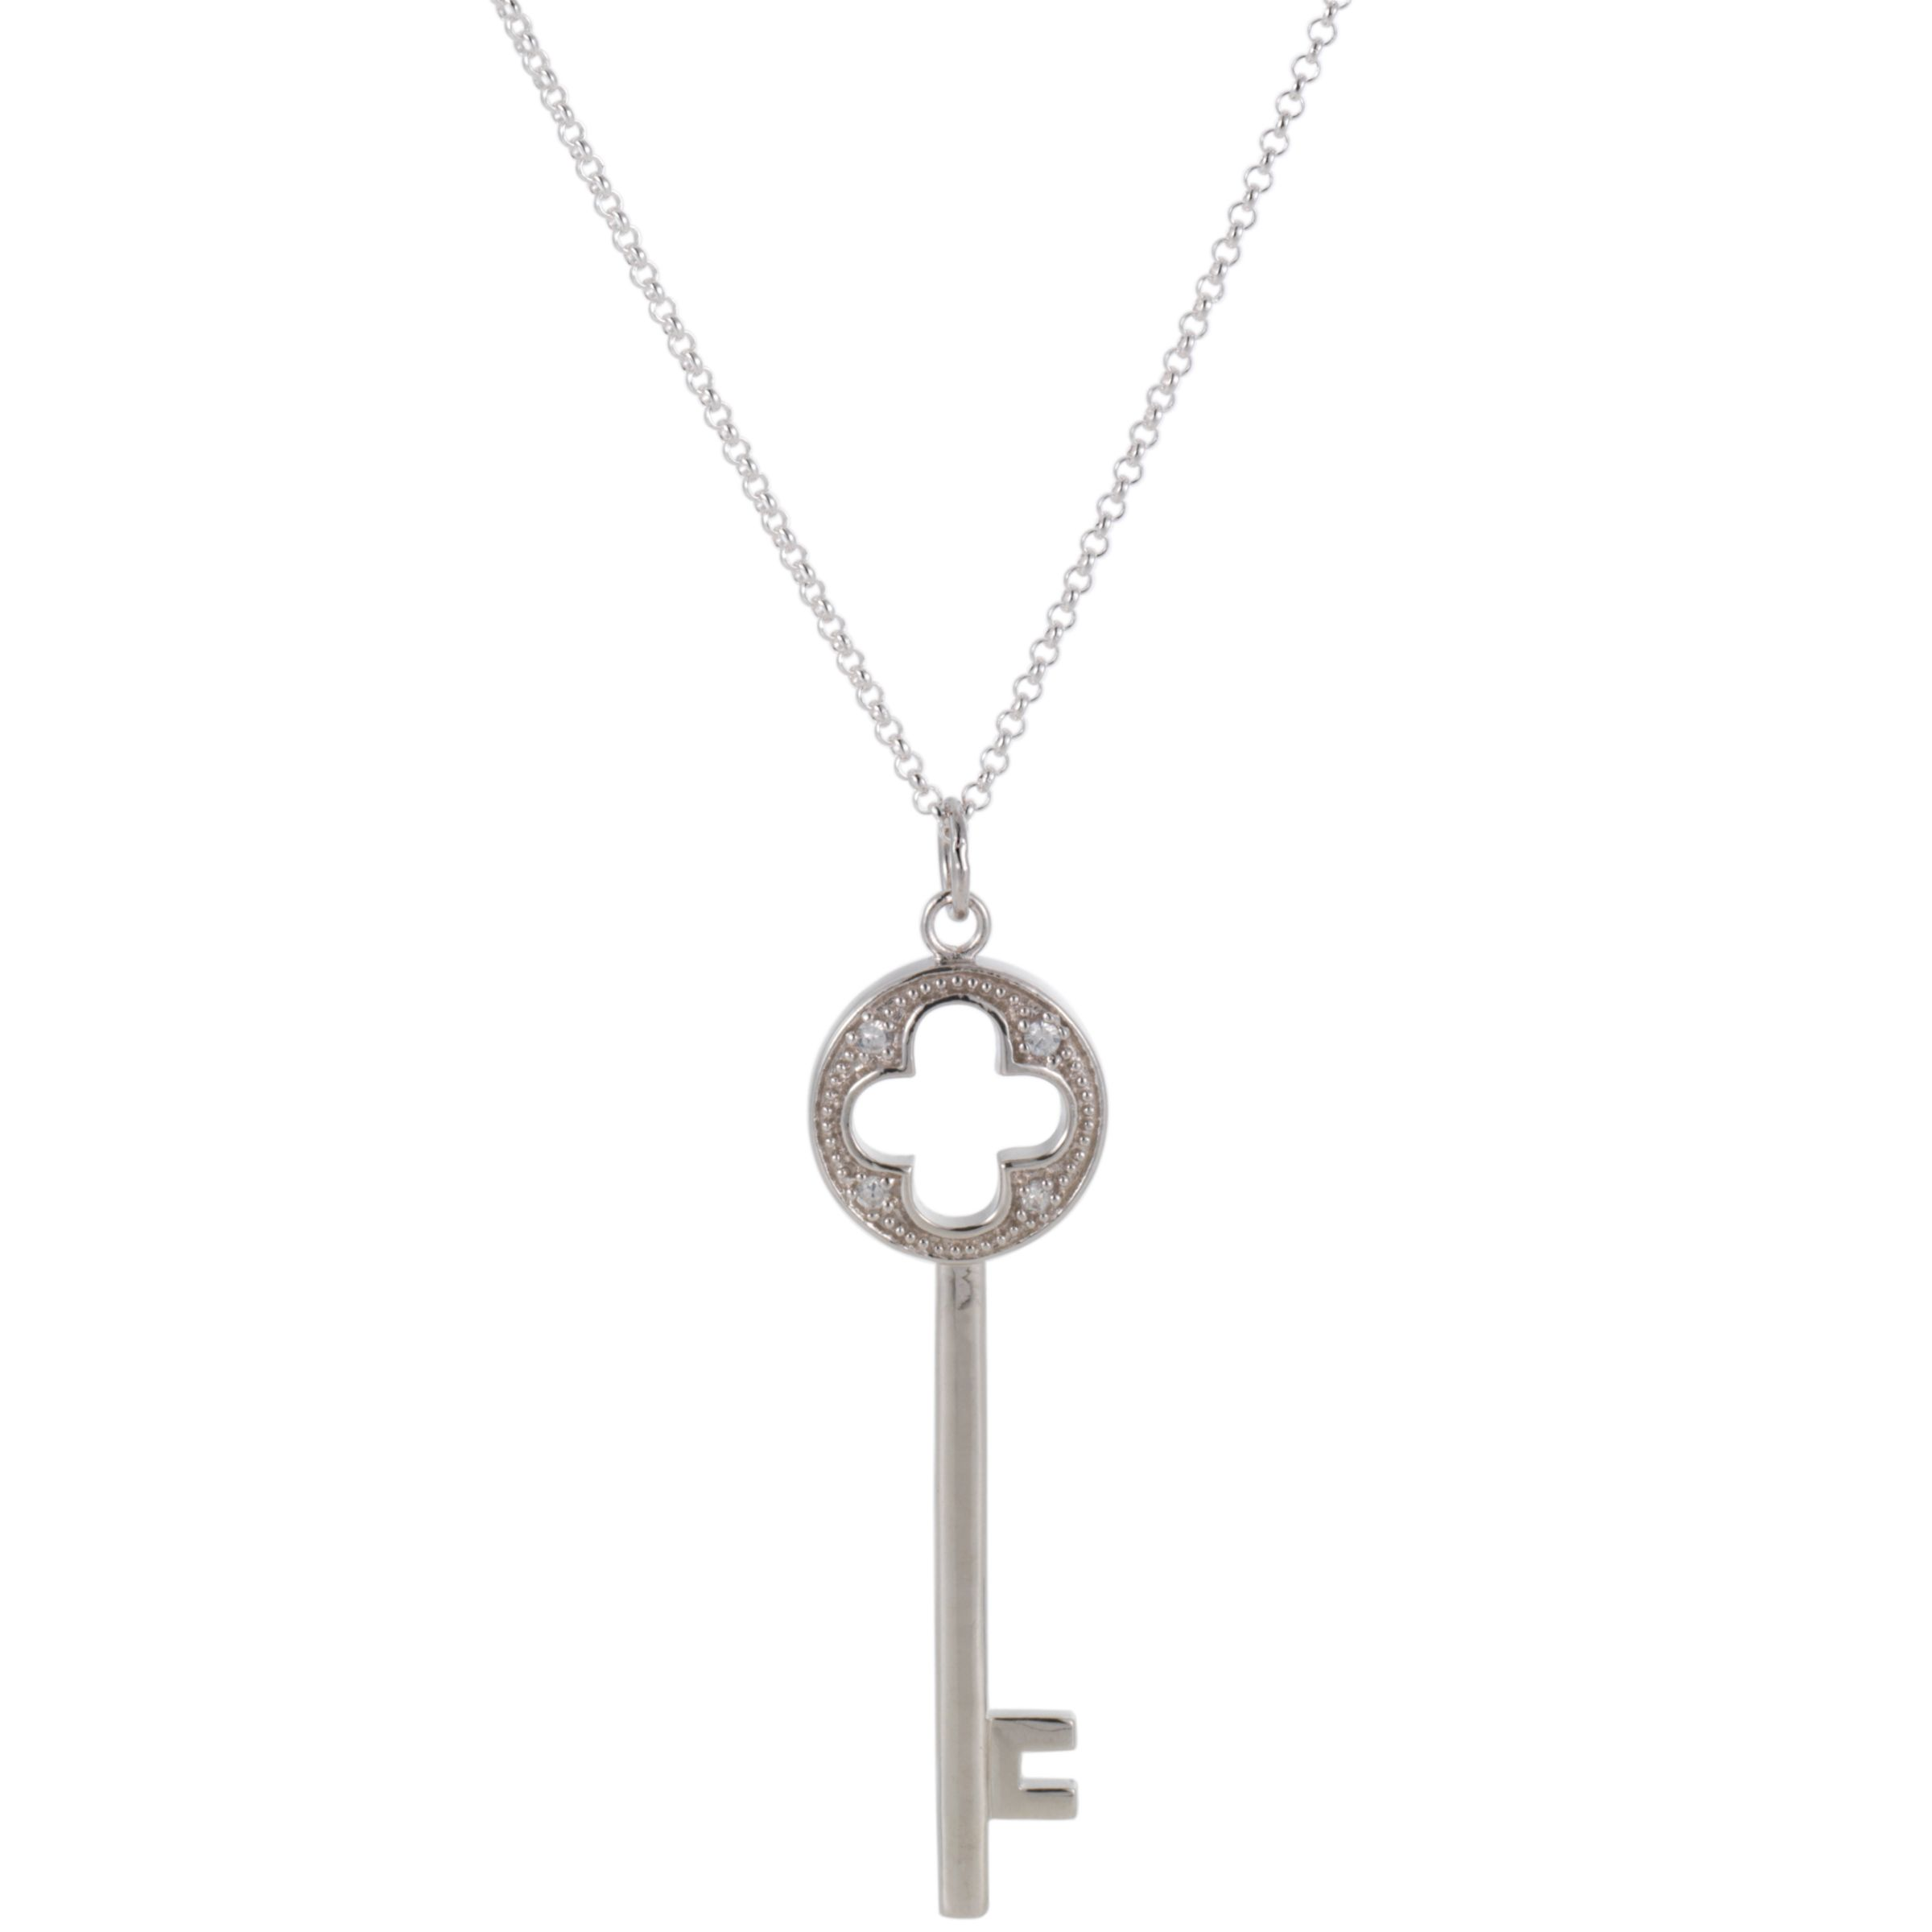 Martick Cubic Zirconia Encrusted Key Pendant Necklace